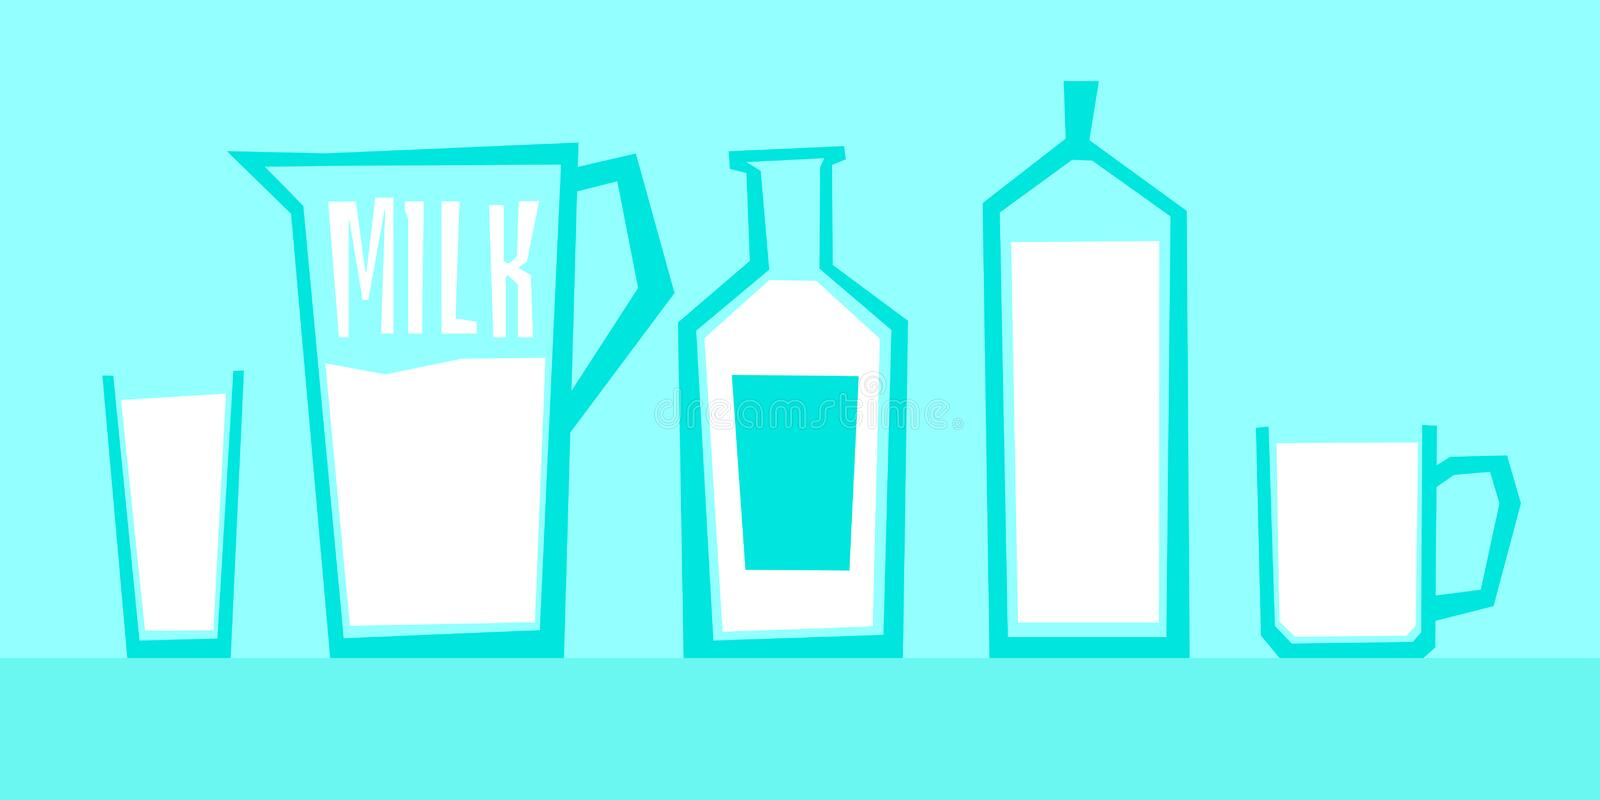 Vector illustration of milk in different glass containers vector illustration